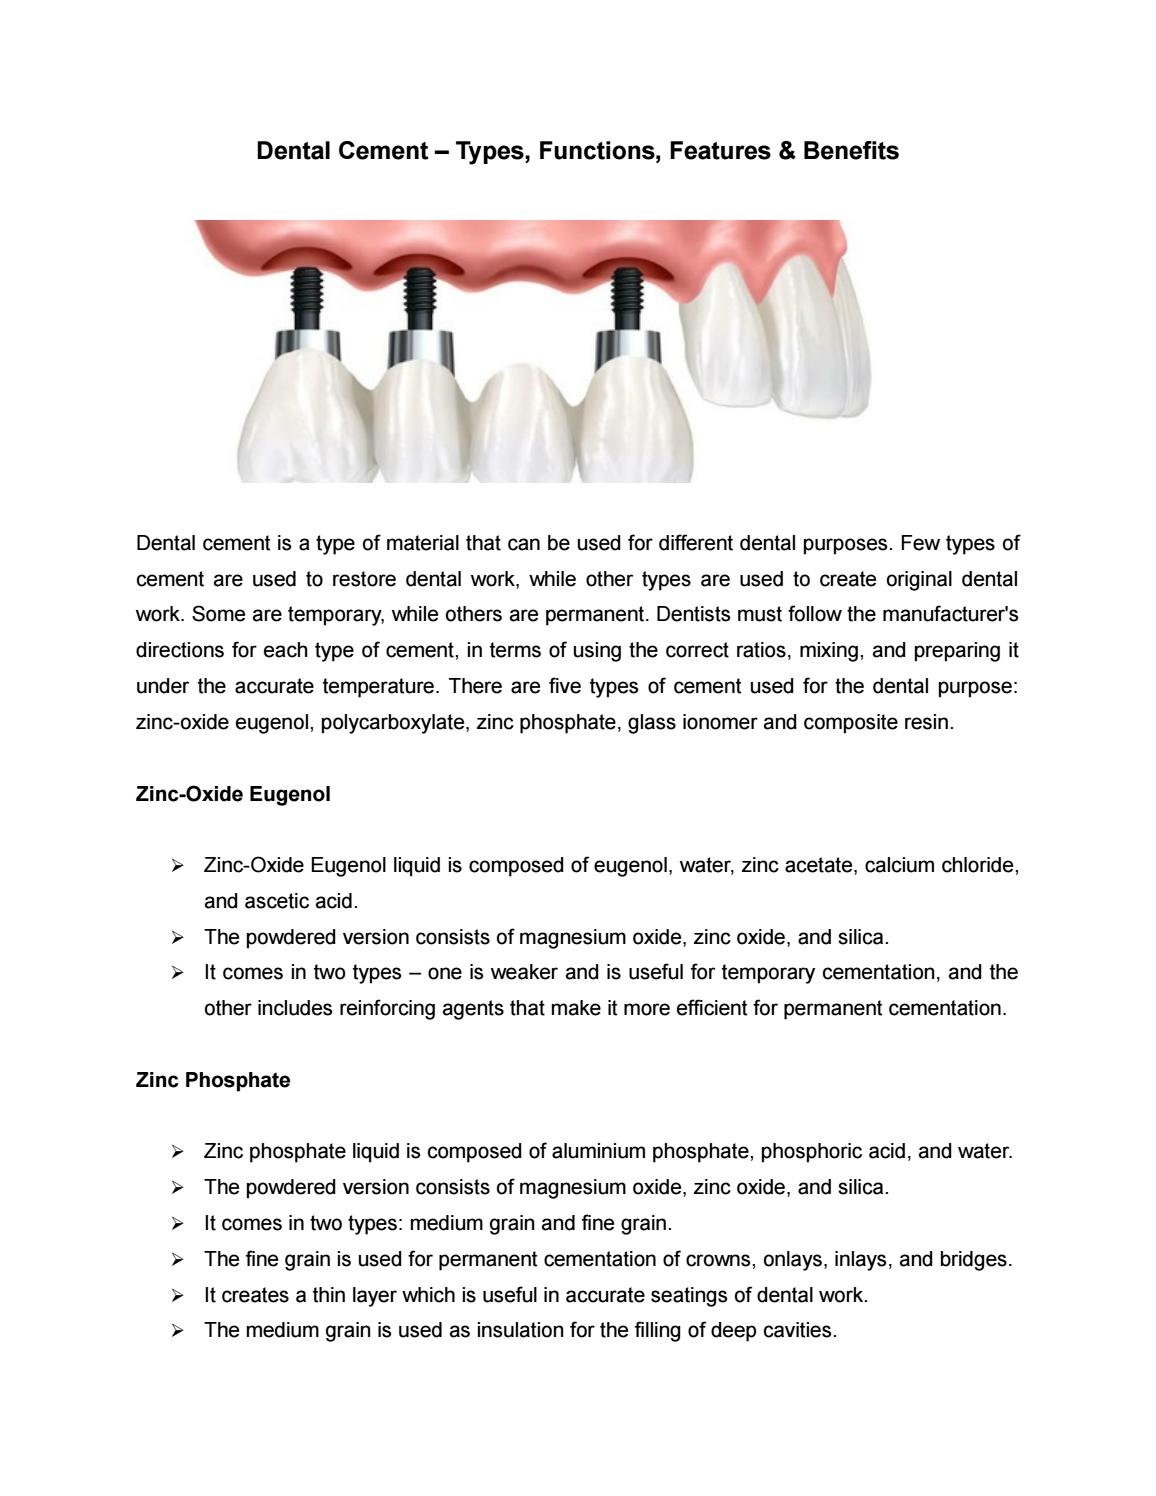 different types of dental cements